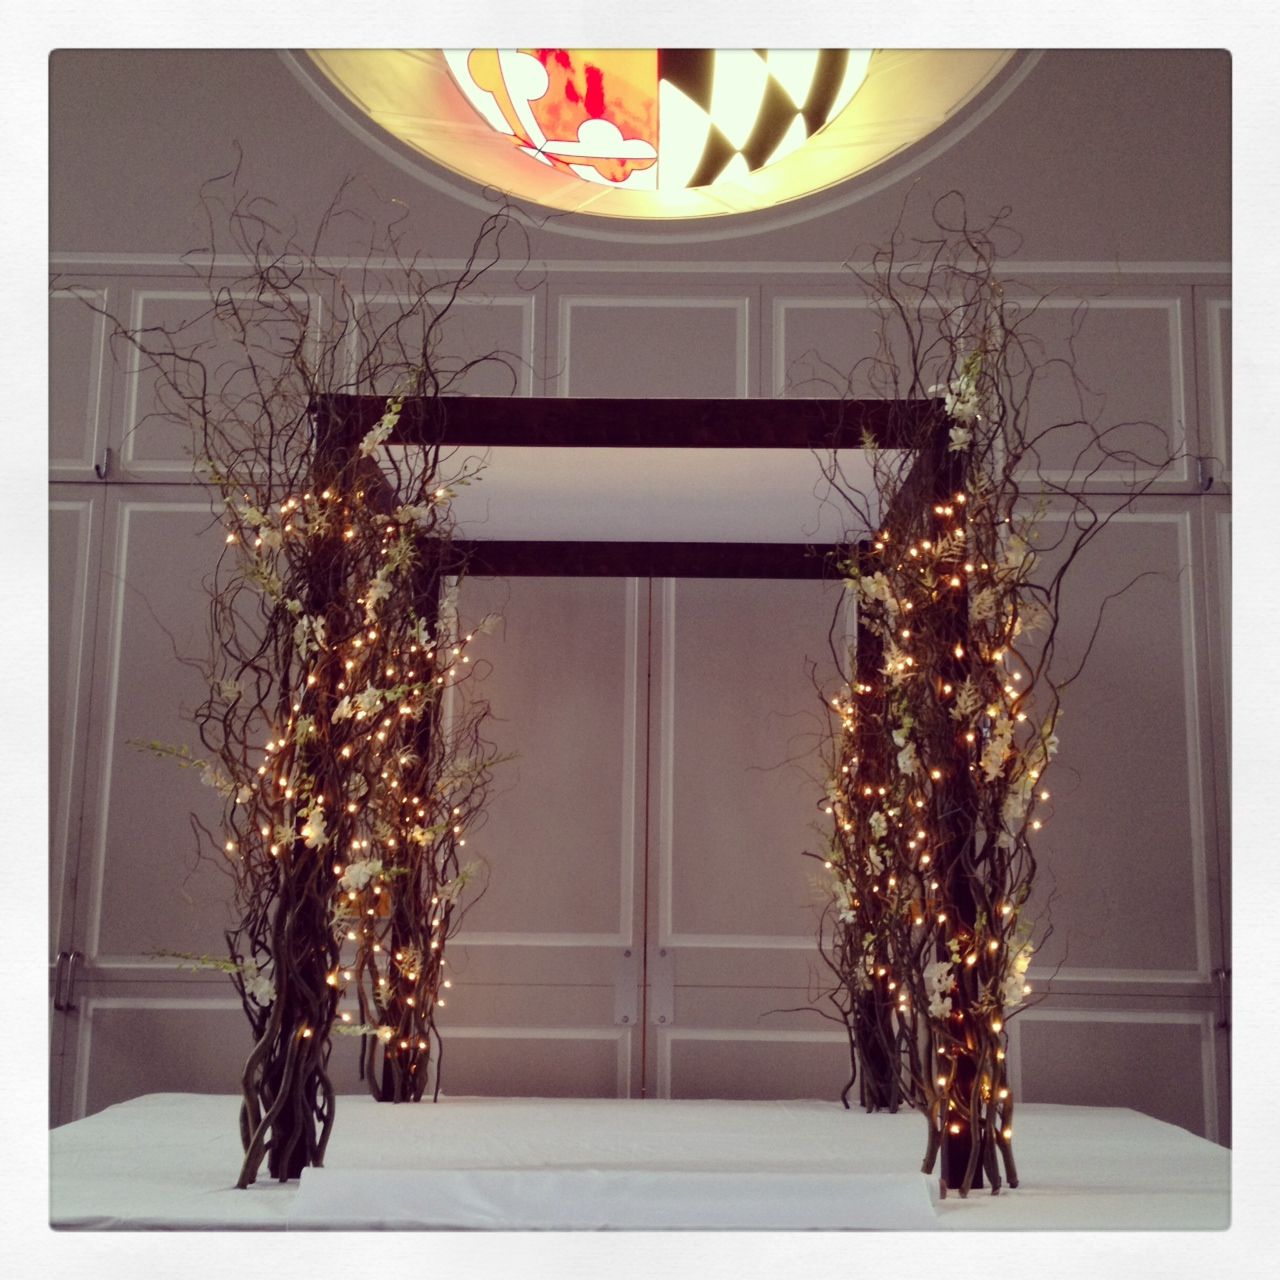 curly willow chuppah - Google Search